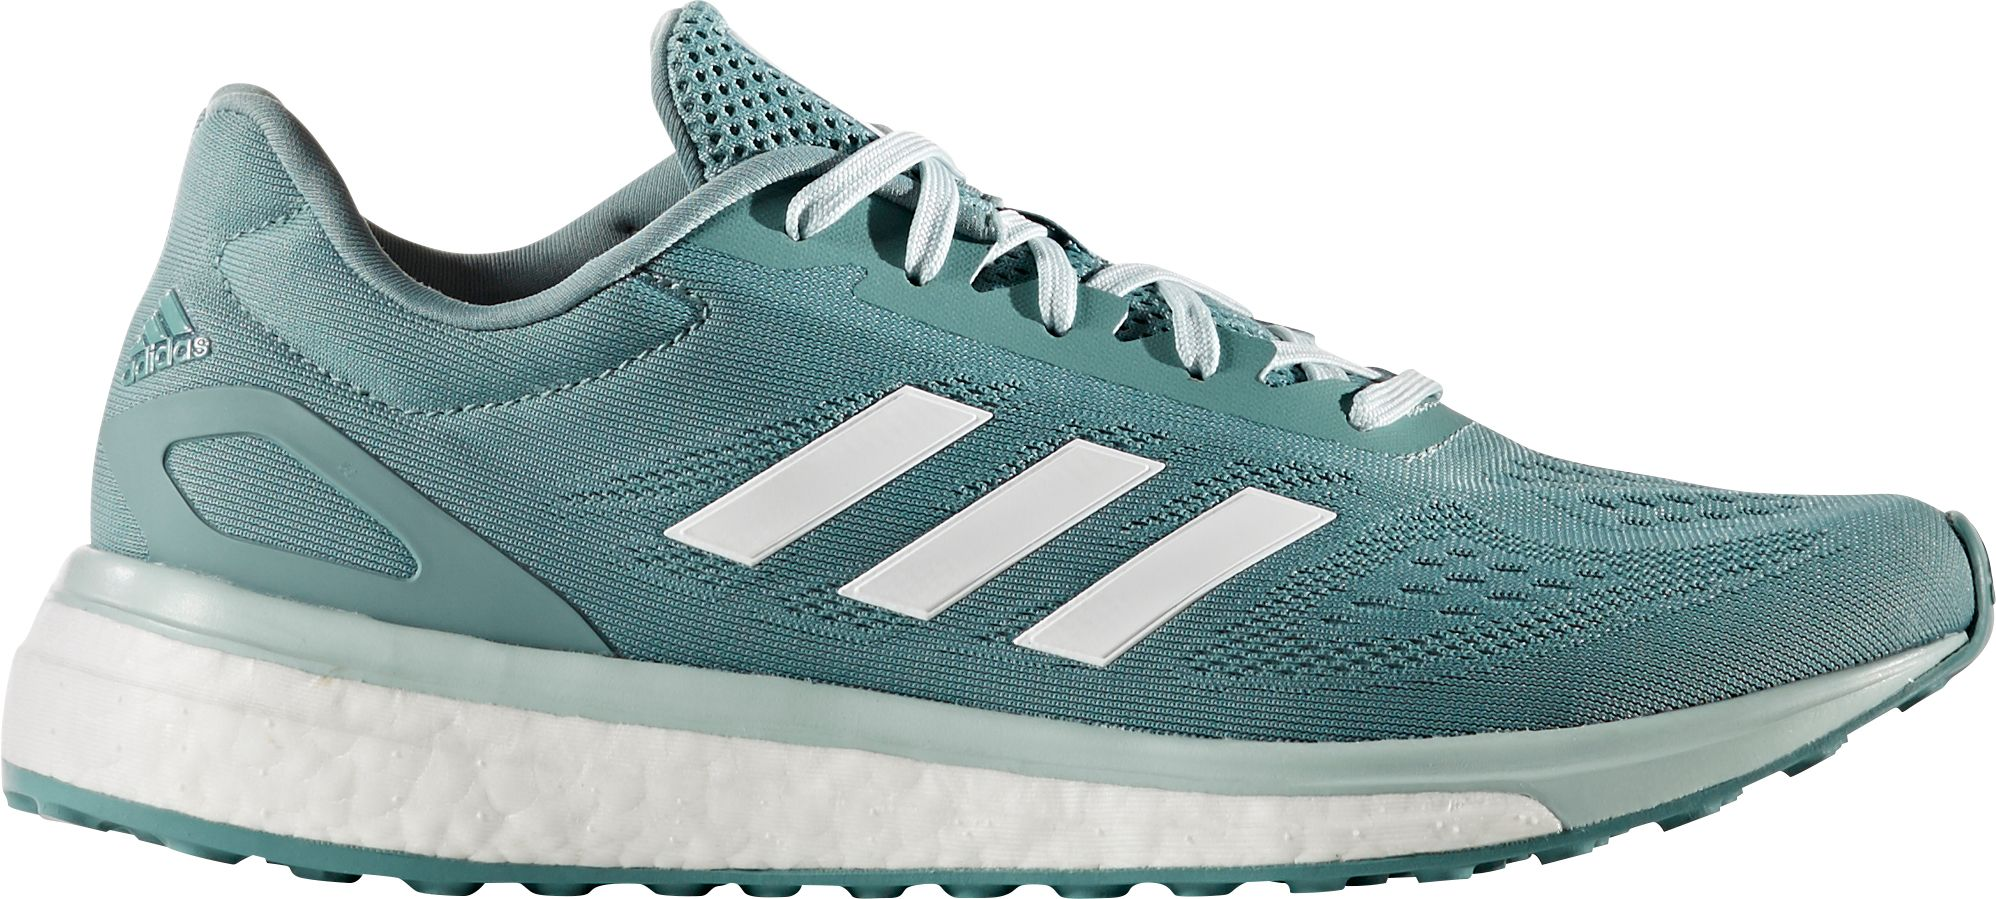 adidas men's sonic drive running shoes review